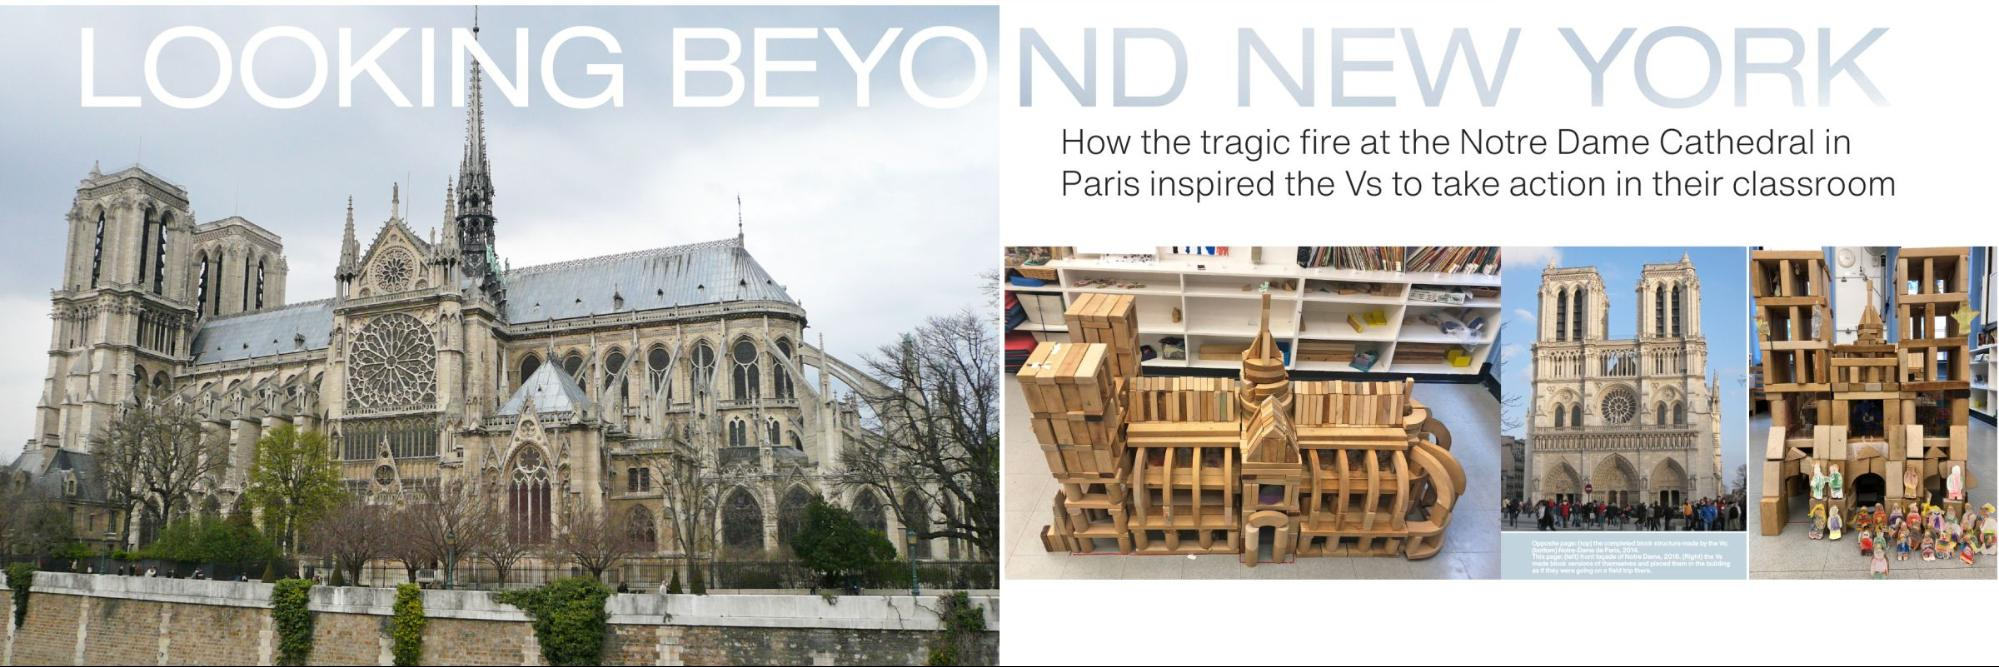 Looking Beyond New York: How the tragic fire at the Notre Dame Cathedral in Paris inspired the Vs to take action in their classroom